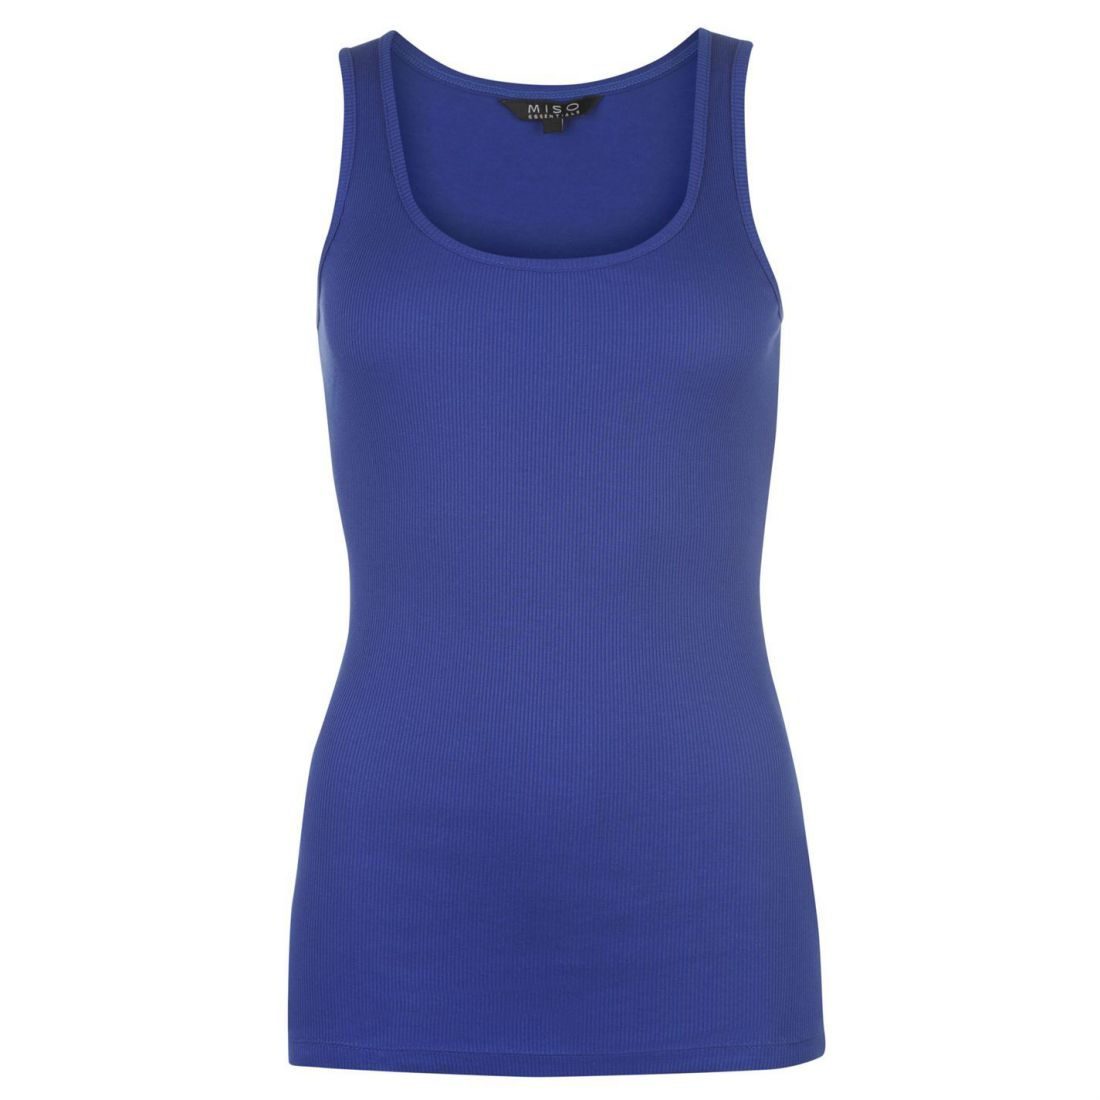 Ladies Miso Block Coloured Ribbed Tank Scooped Vest Cotton Top Sizes 8-18